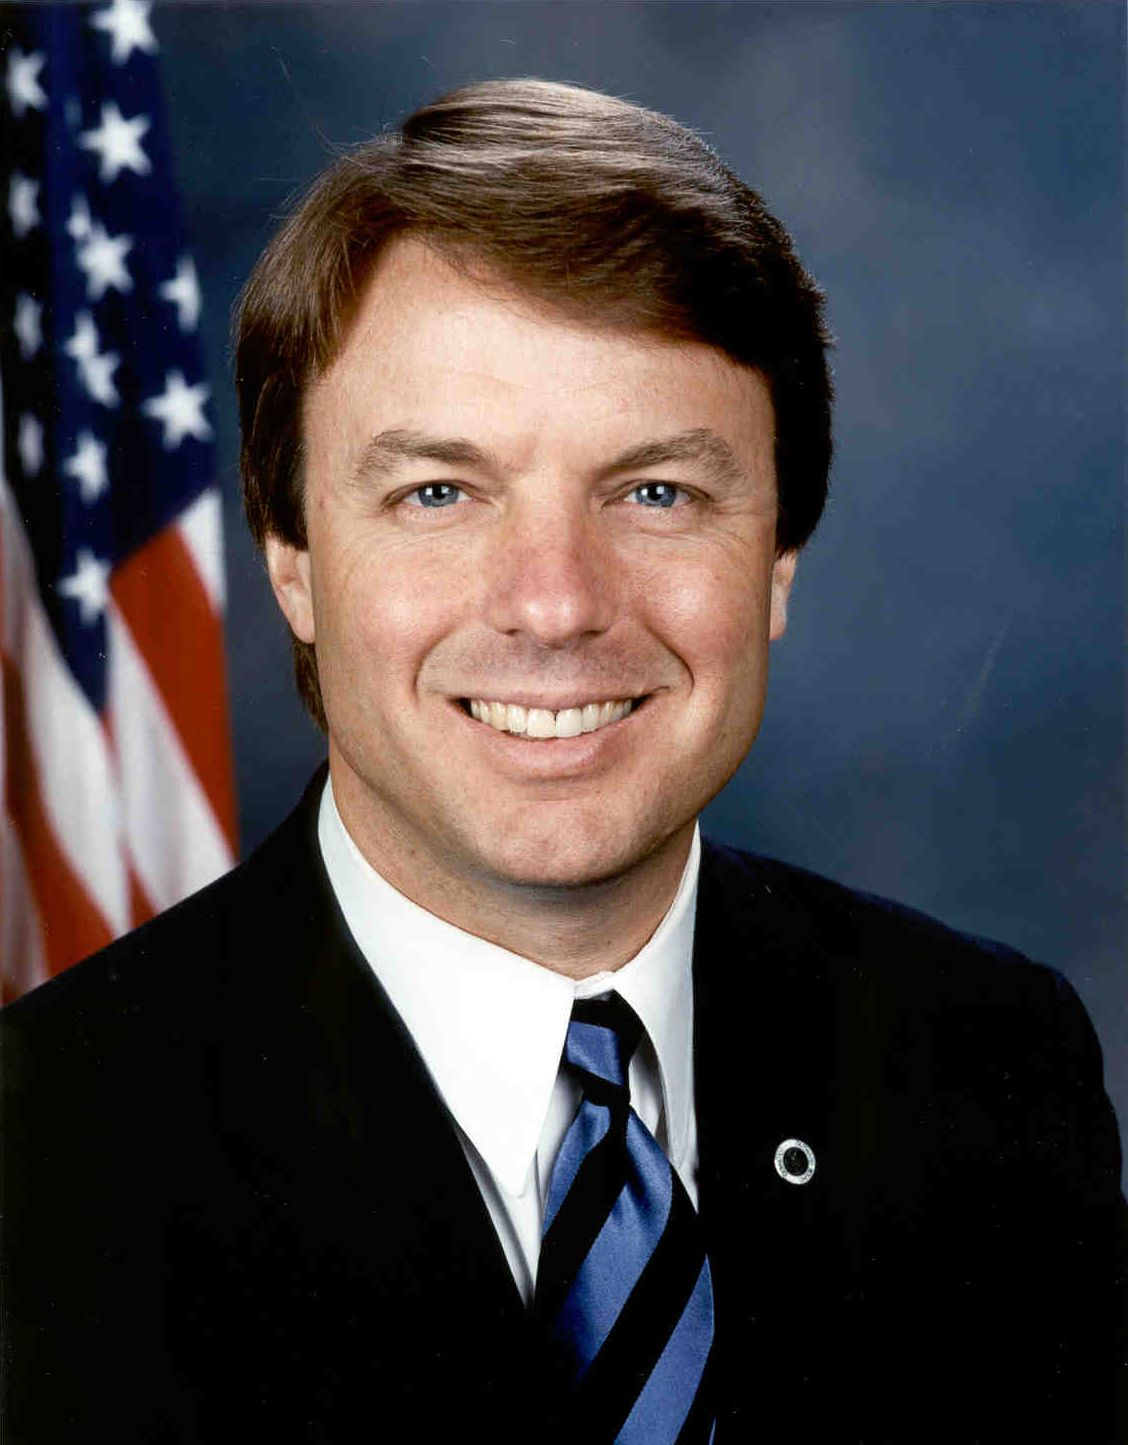 John Edwards is on my Admired-People Board because he is the ONLY Presidential candidate who has fought so hard on a platform for the working poor in this country-that took guts and anyone with that kind of backbone gets my vote every time. :)